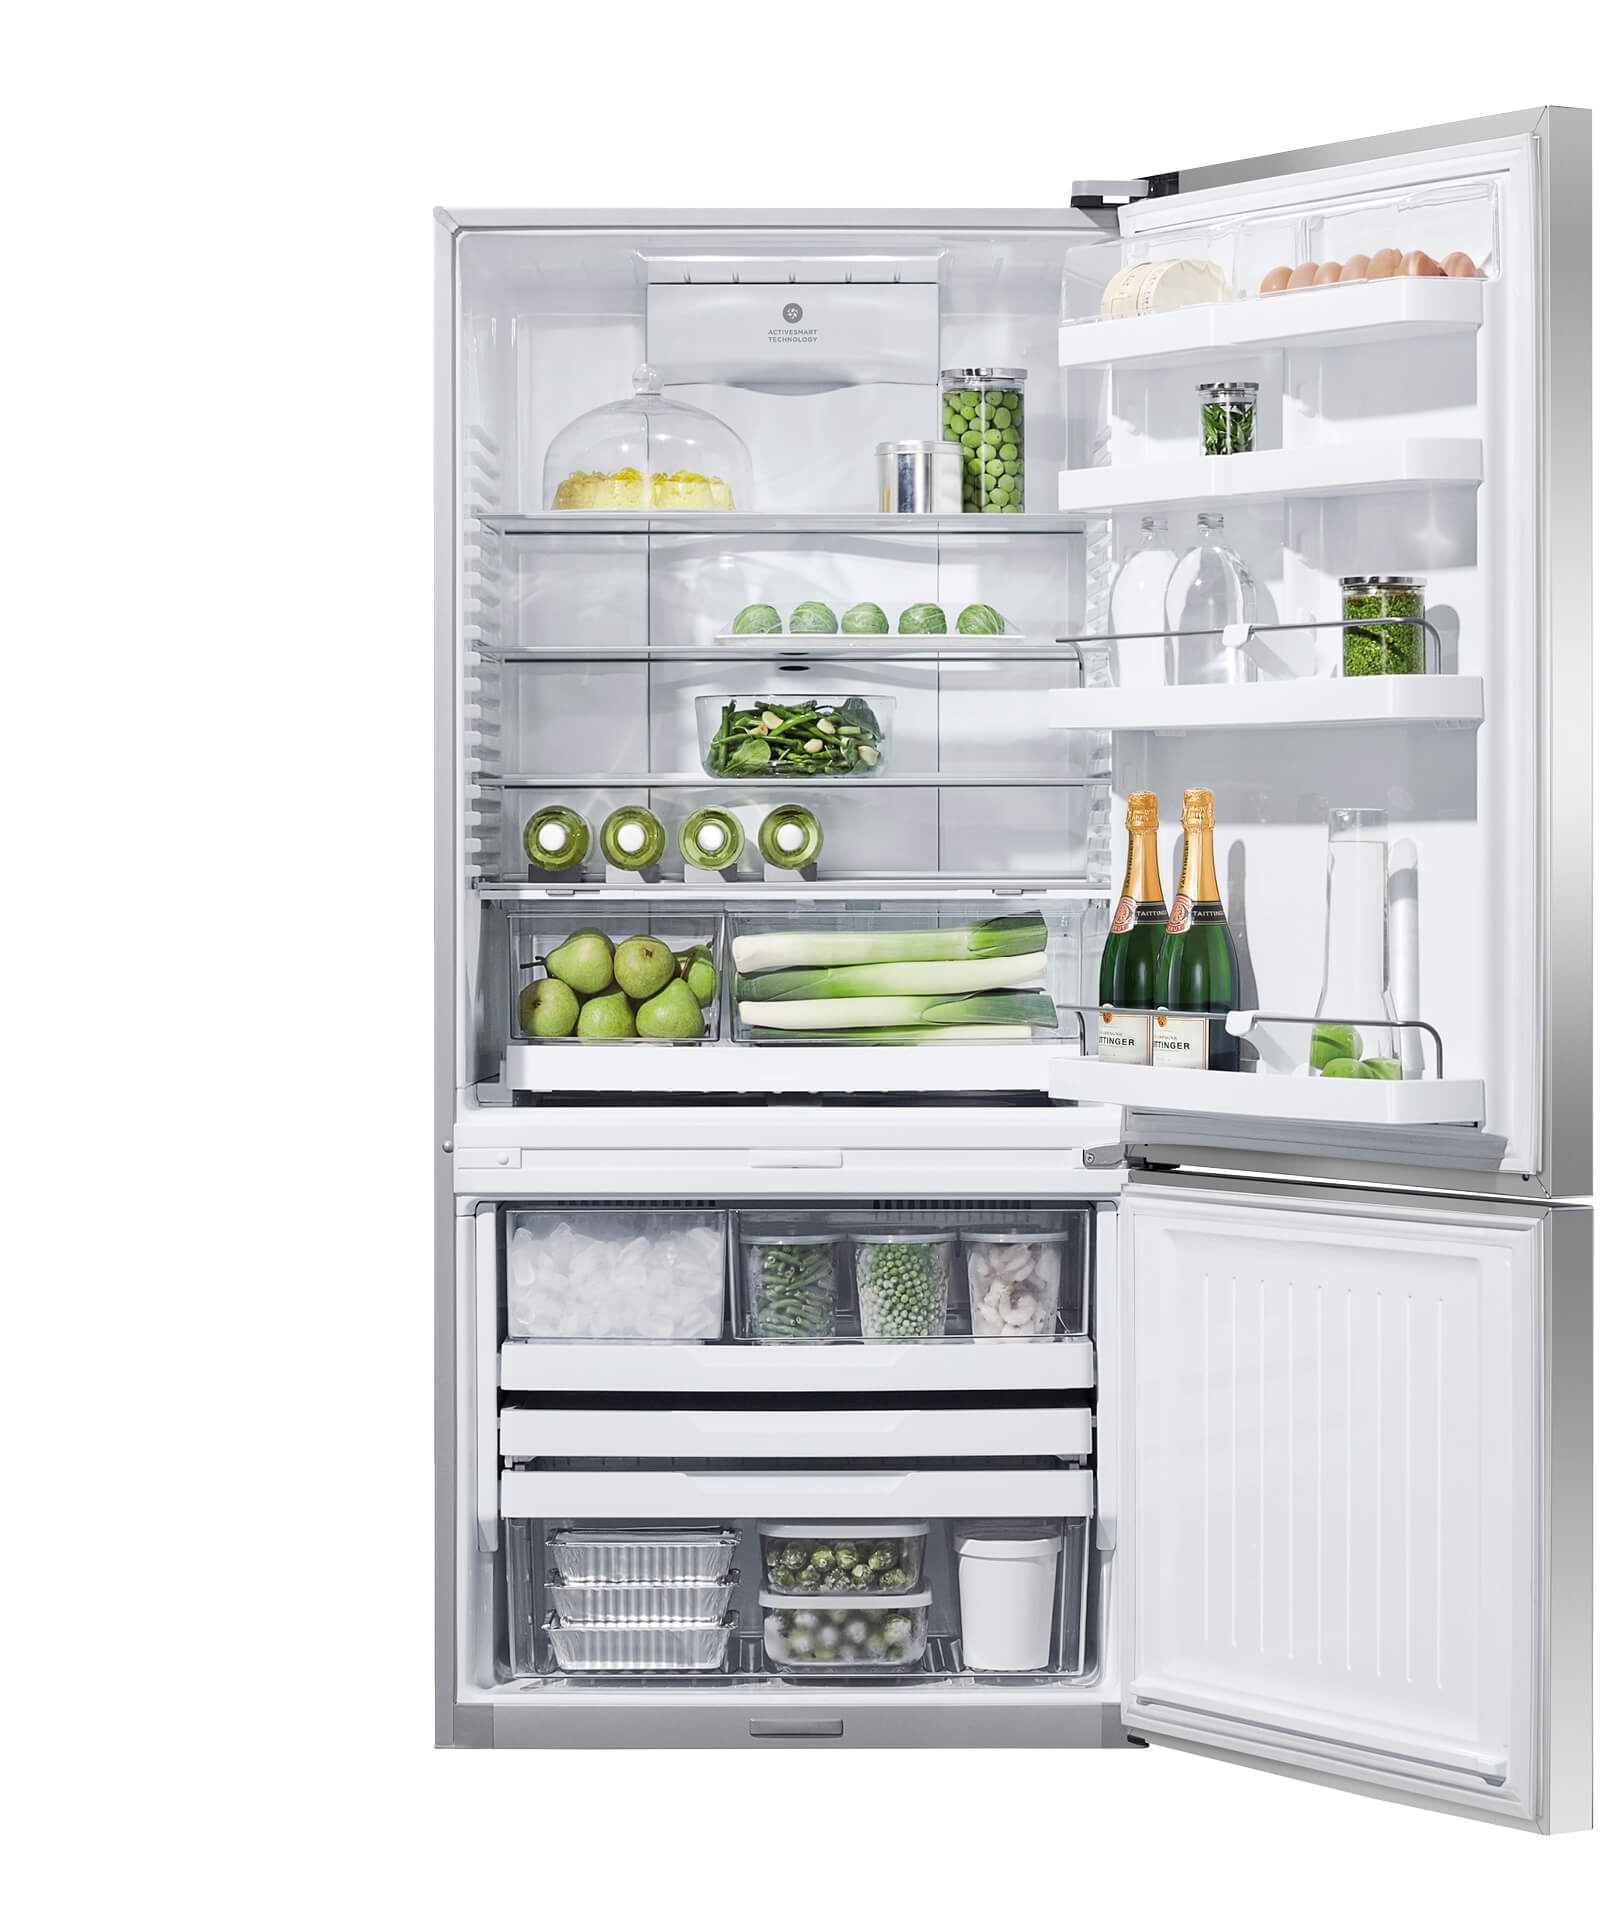 fisher and paykel e522brxfdu5 manual